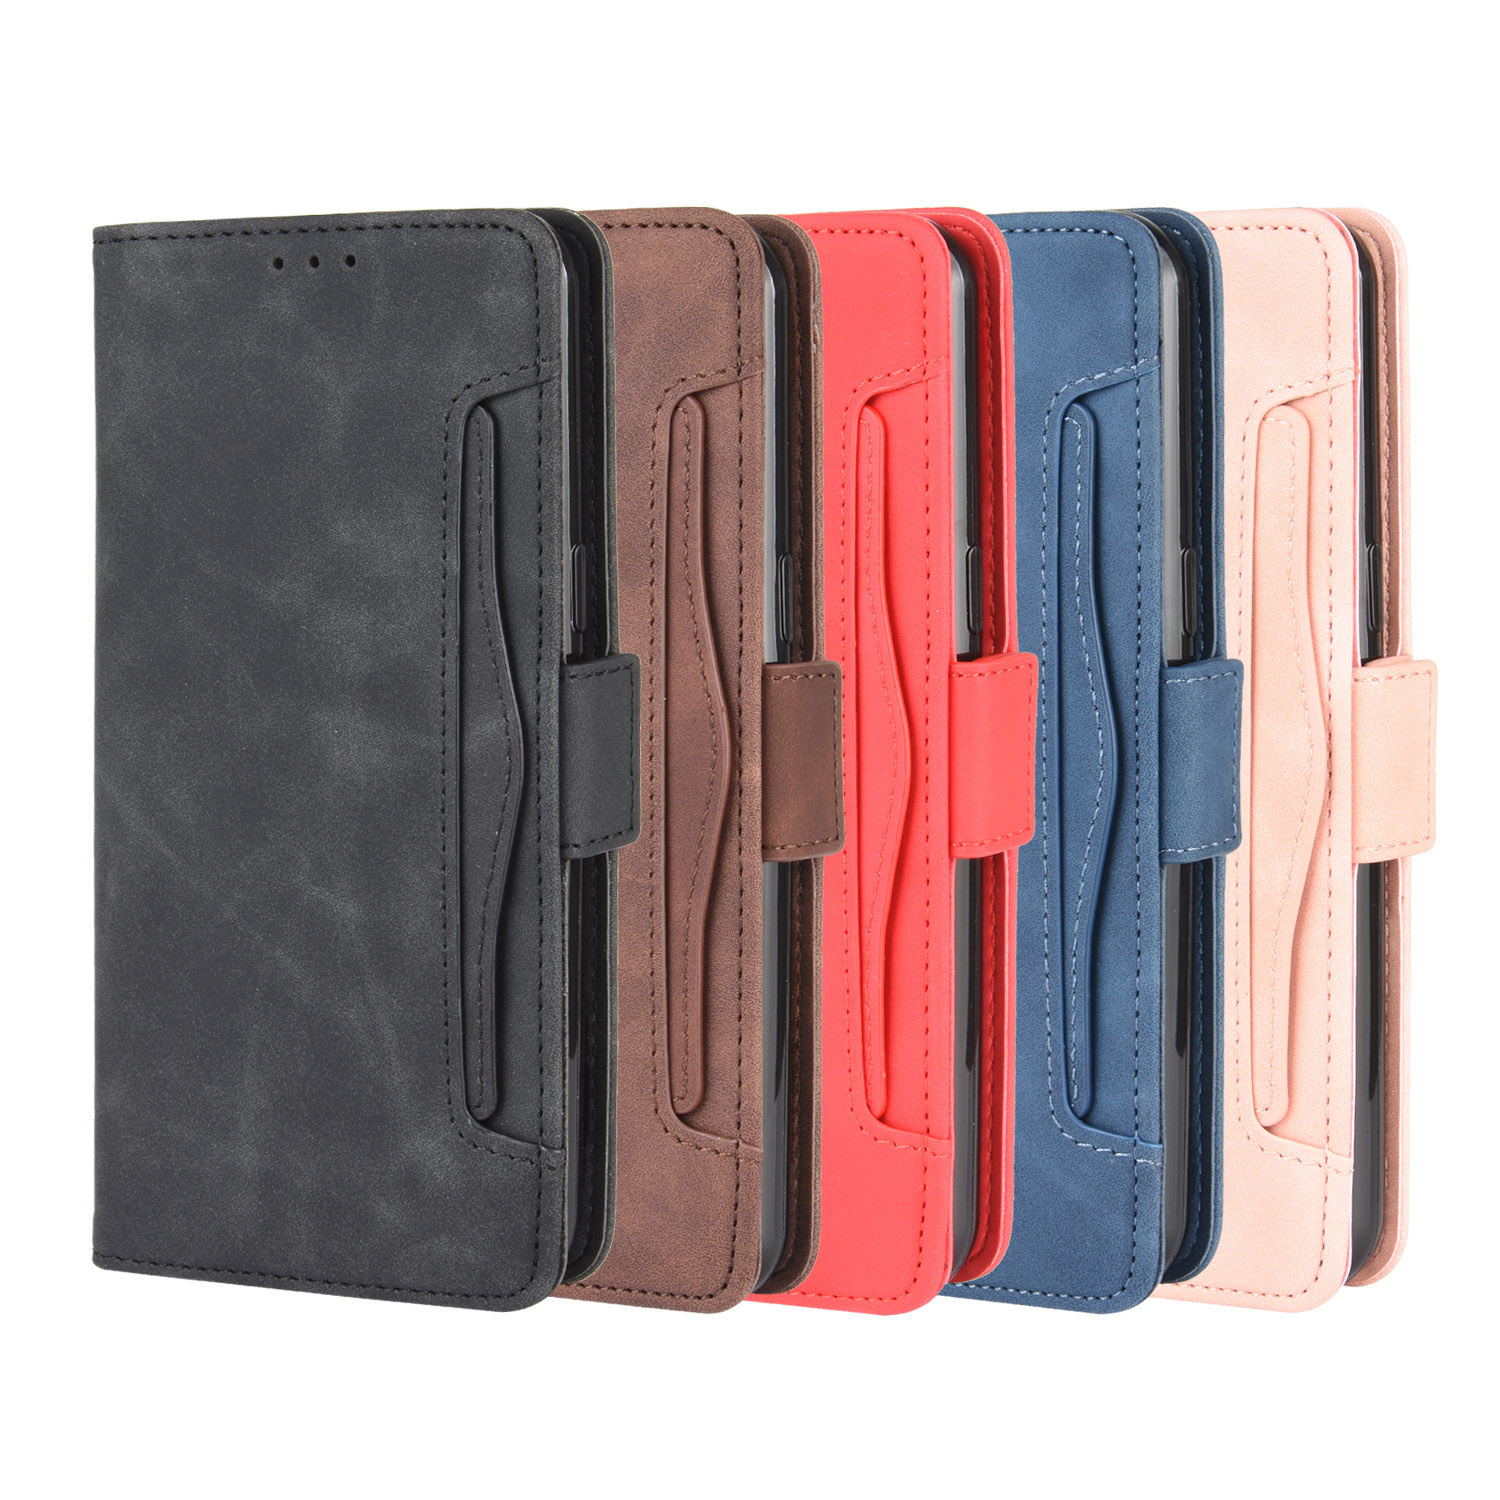 With Card Slots Credit Card Holder Leather Case For LG K51 K61 Q51 Q60 Q70 Stylo 6 K40S K50S Magnetic Flip Wallet Phone Bag